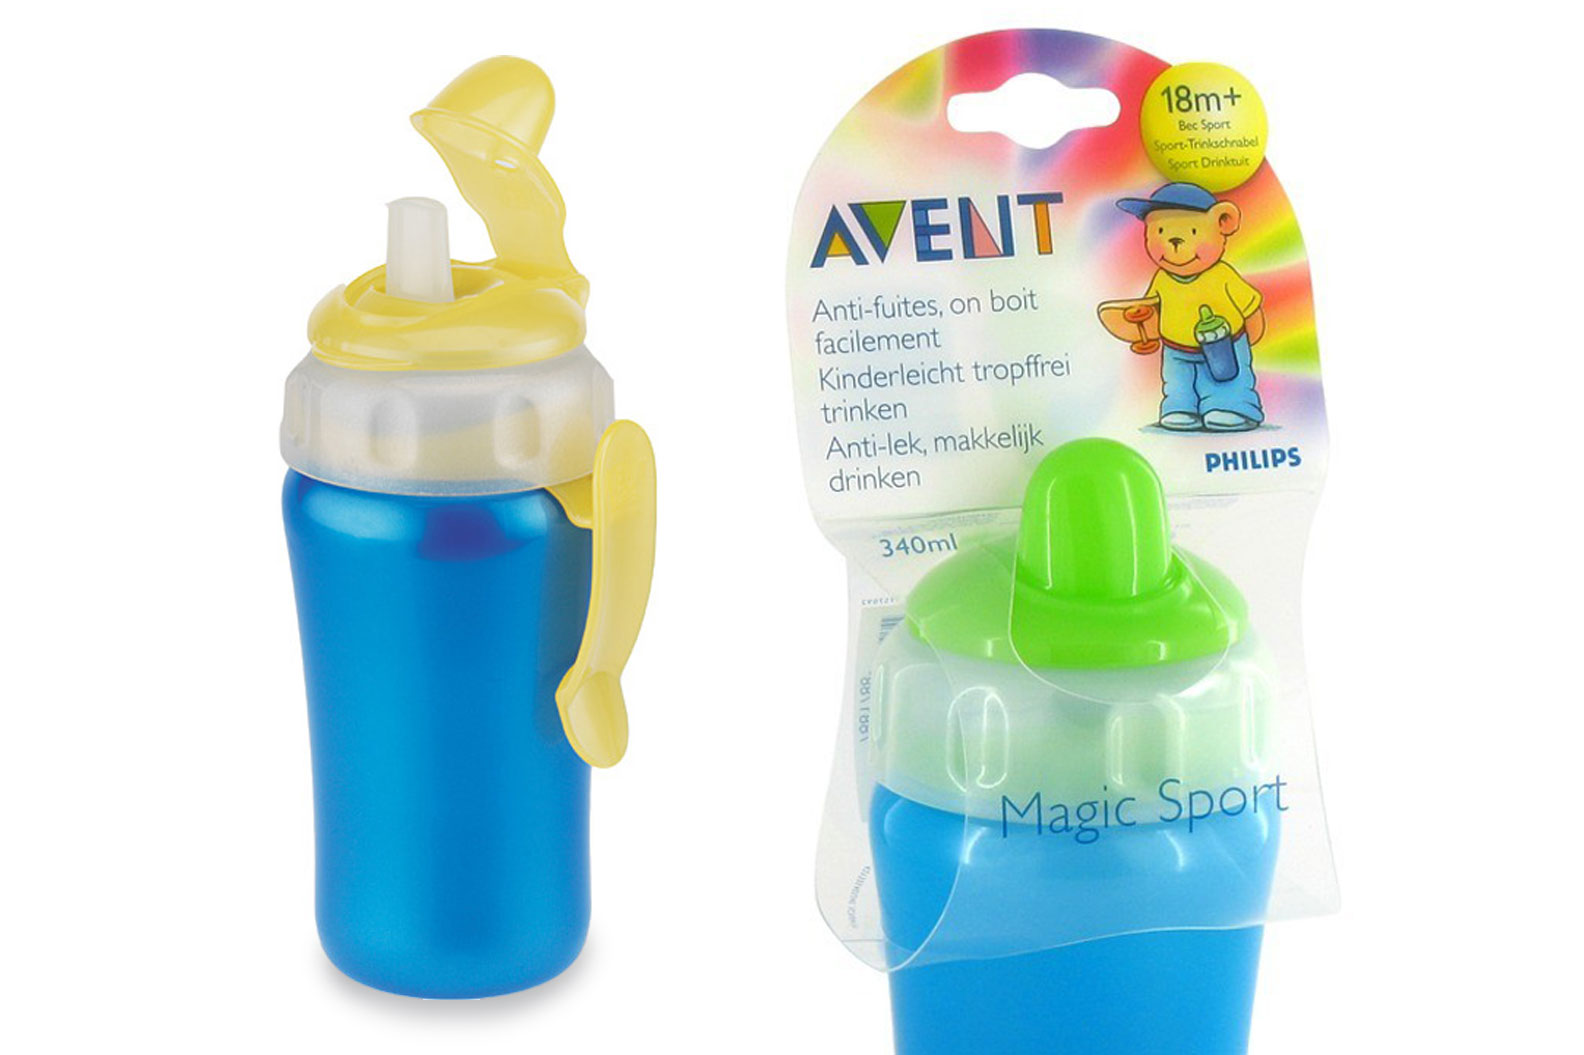 PhilipsAvent-MagicCup-TulettDesign